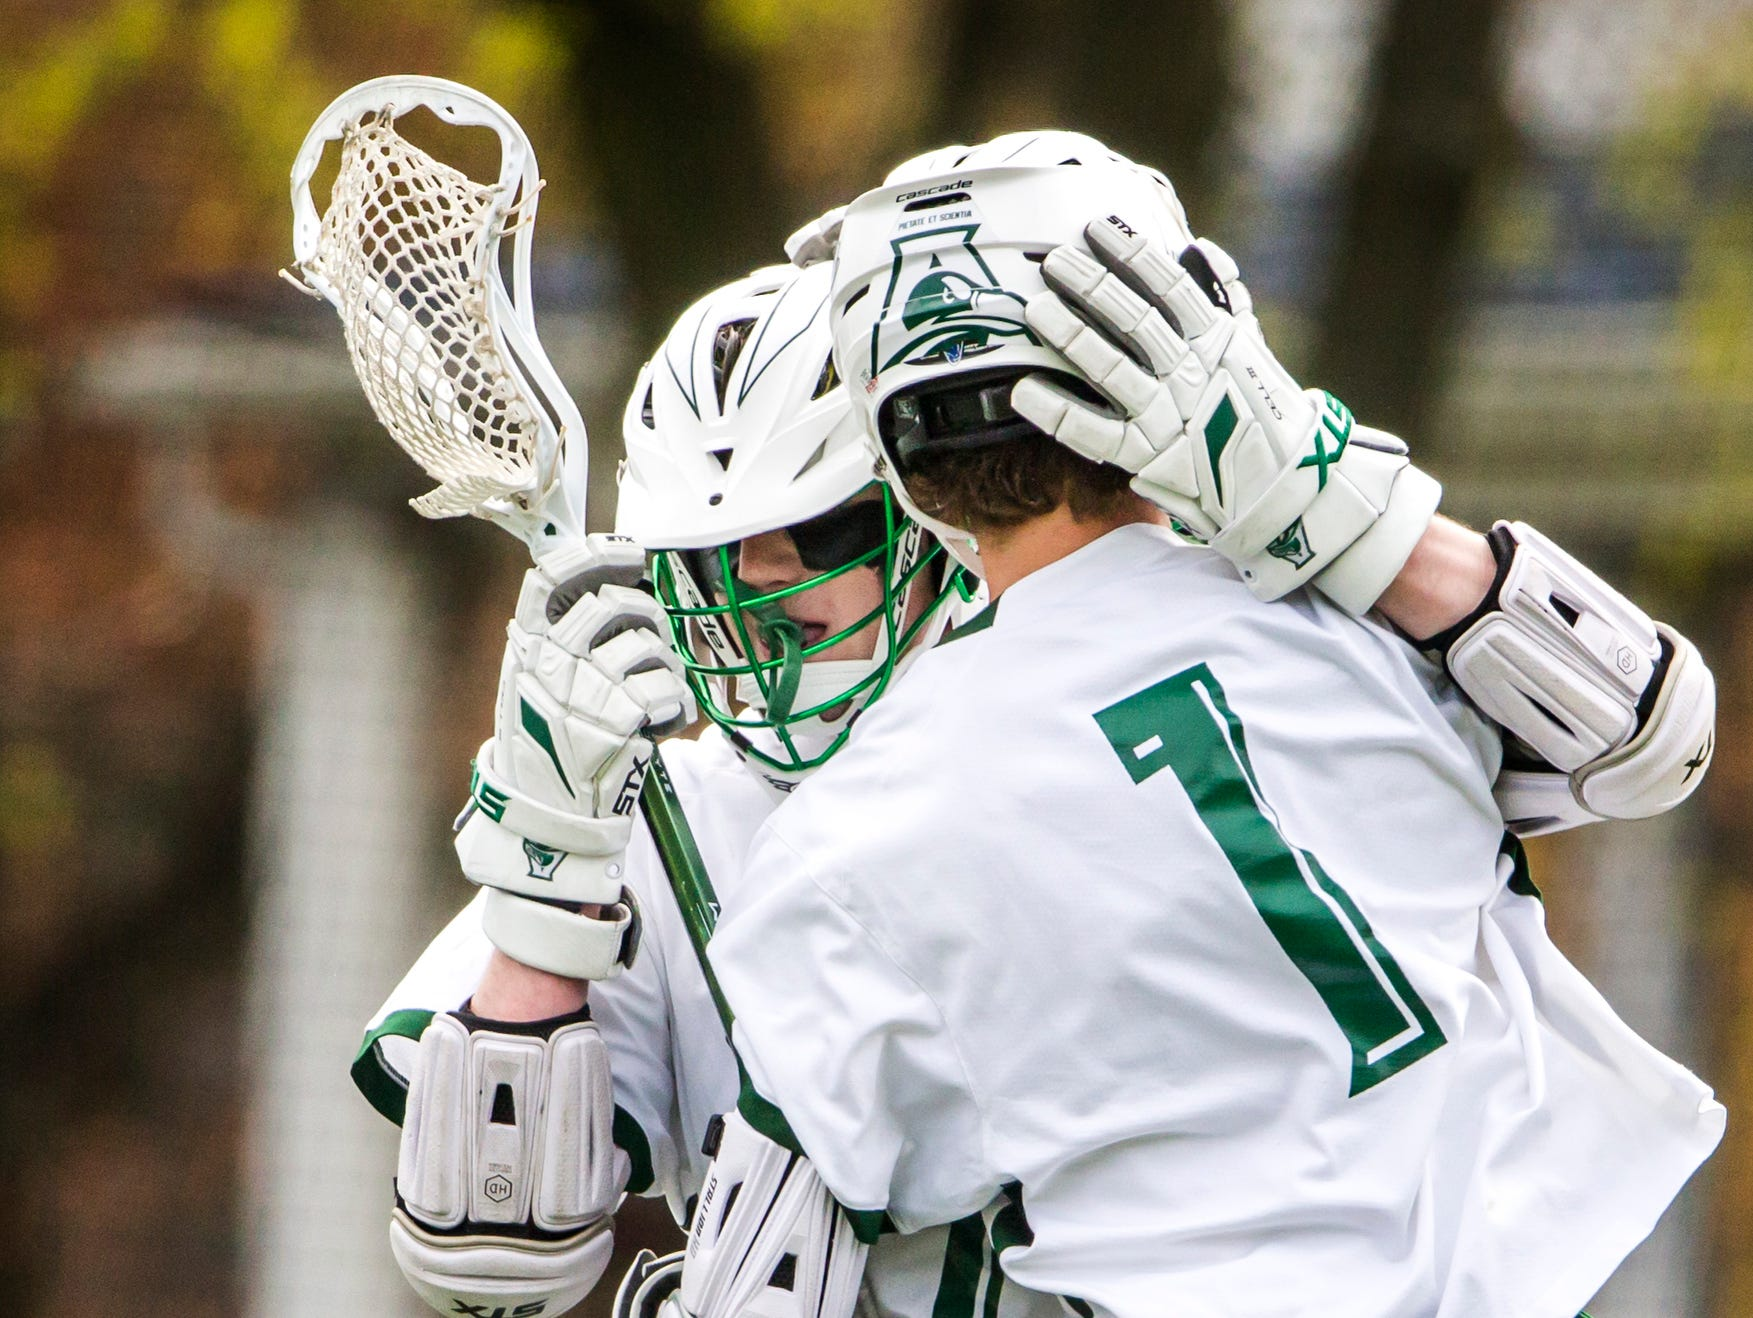 Archmere's Cole Bauer (right) hugs teammate Robert Baxter (left) after a goal in Archmere Academy's 13-8 win over Wilmington Friends School at Archmere on Thursday afternoon.